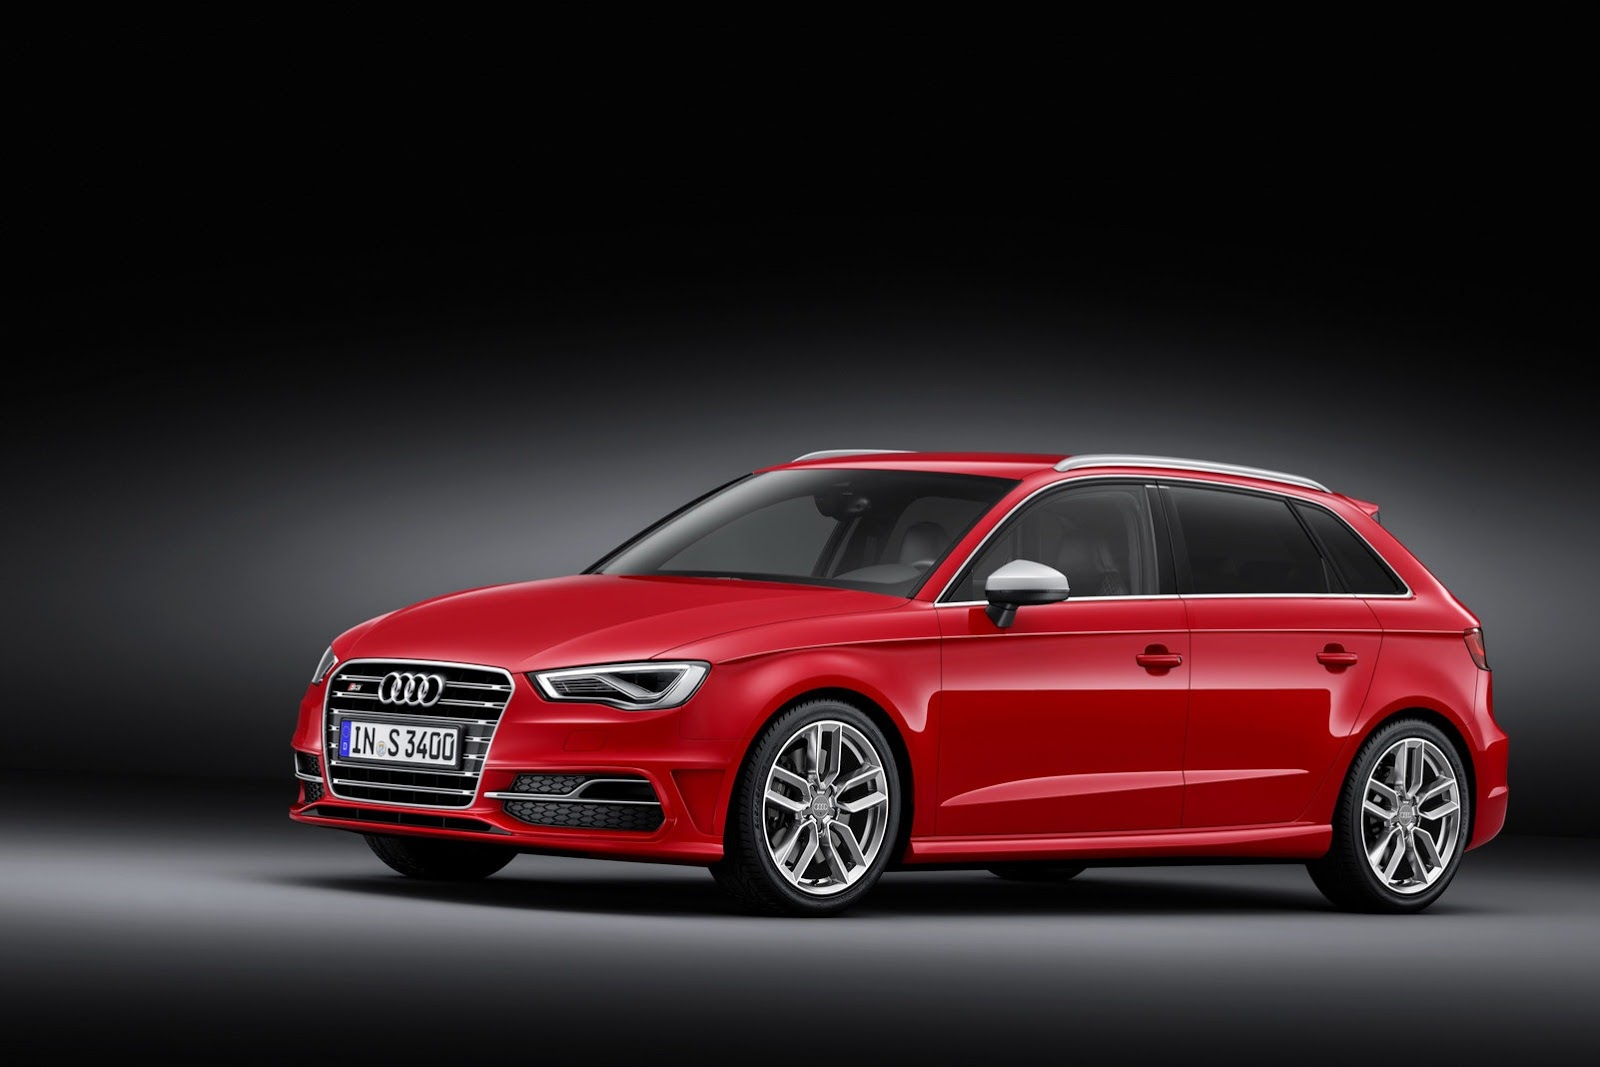 new audi s3 five door sportback has 300 hp autoevolution. Black Bedroom Furniture Sets. Home Design Ideas